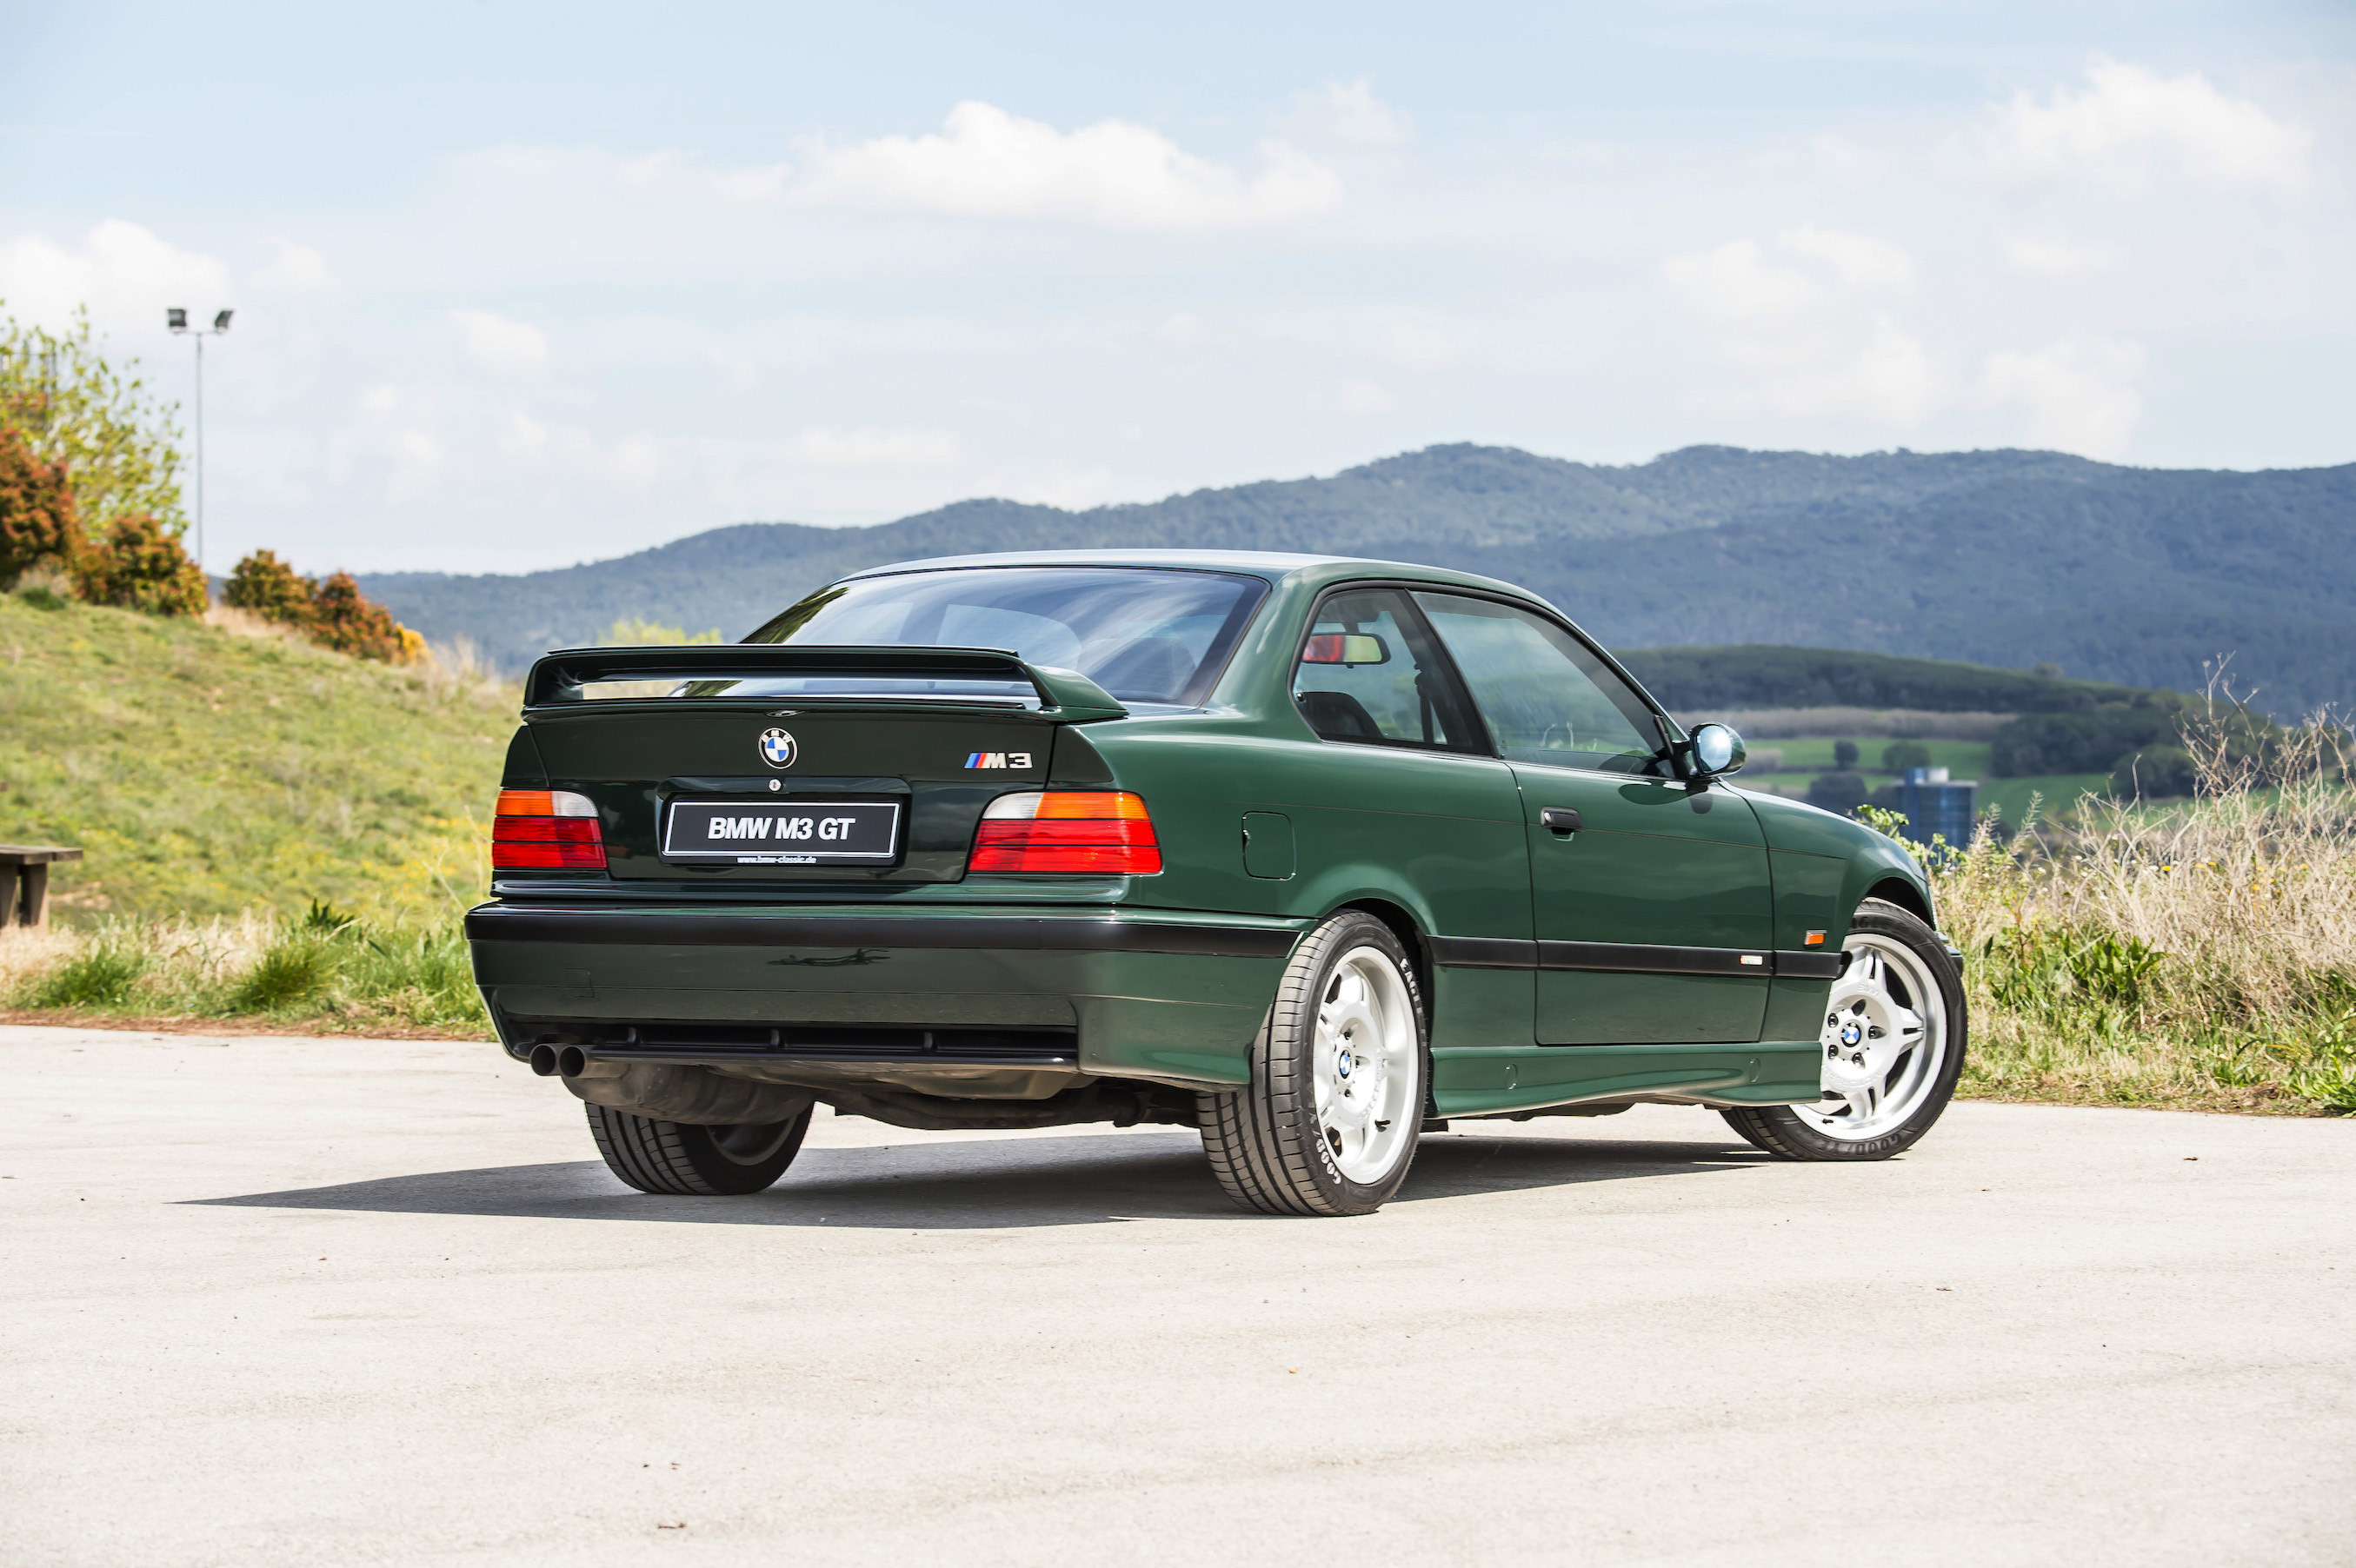 2710x1804 BMW E36 M3 GT british racing green